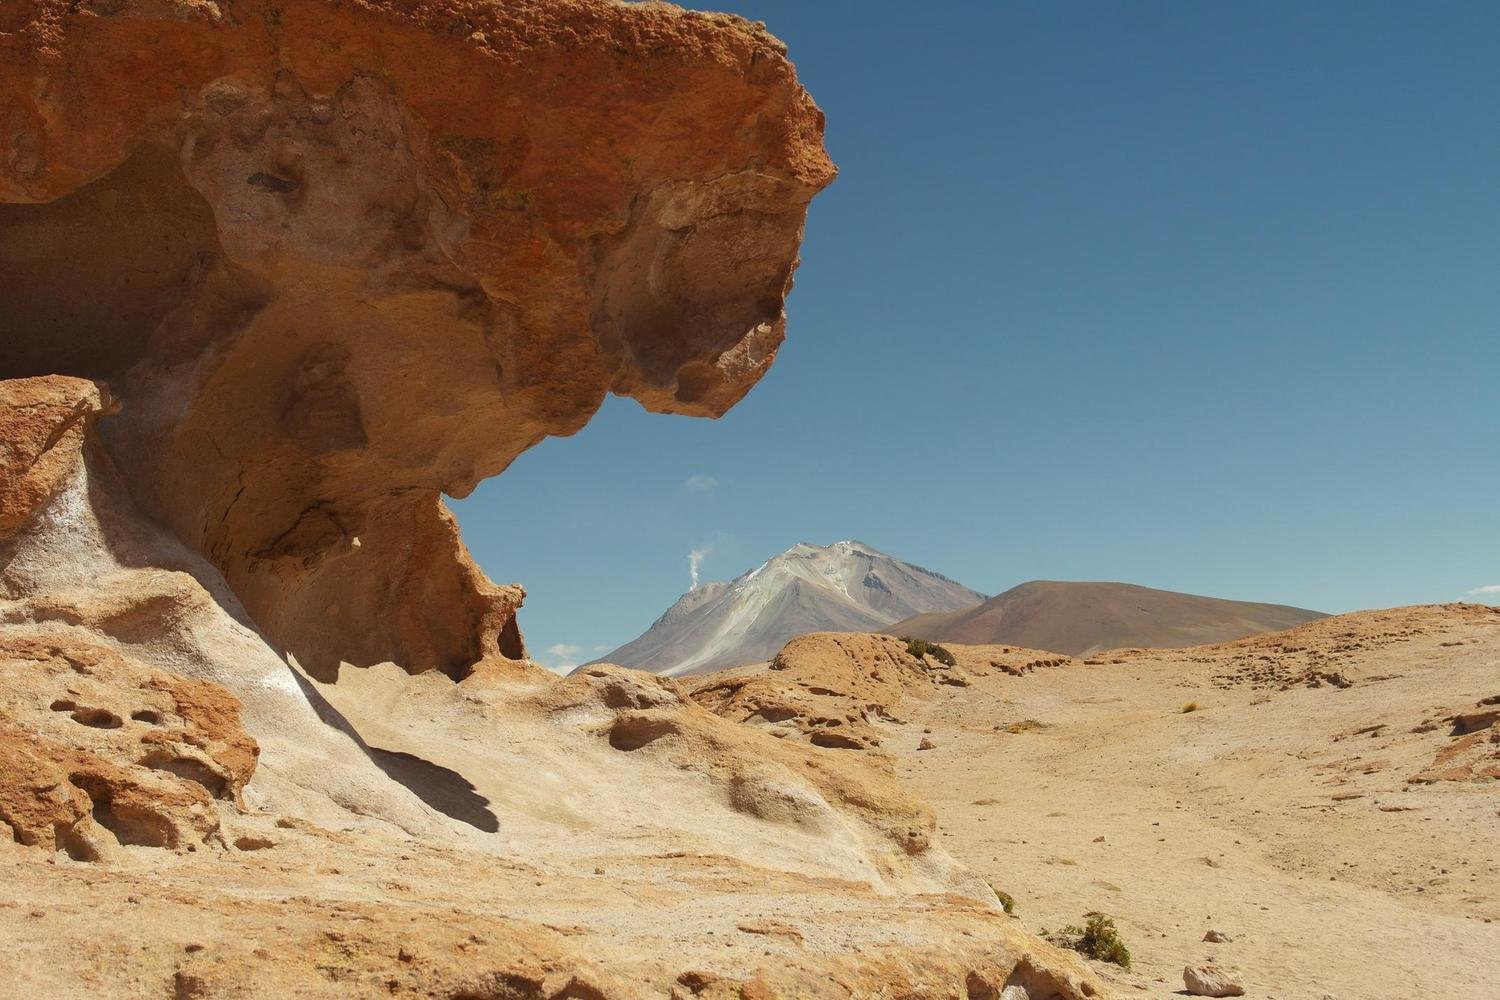 The beautiful rock formations of the stone trees in Bolivia